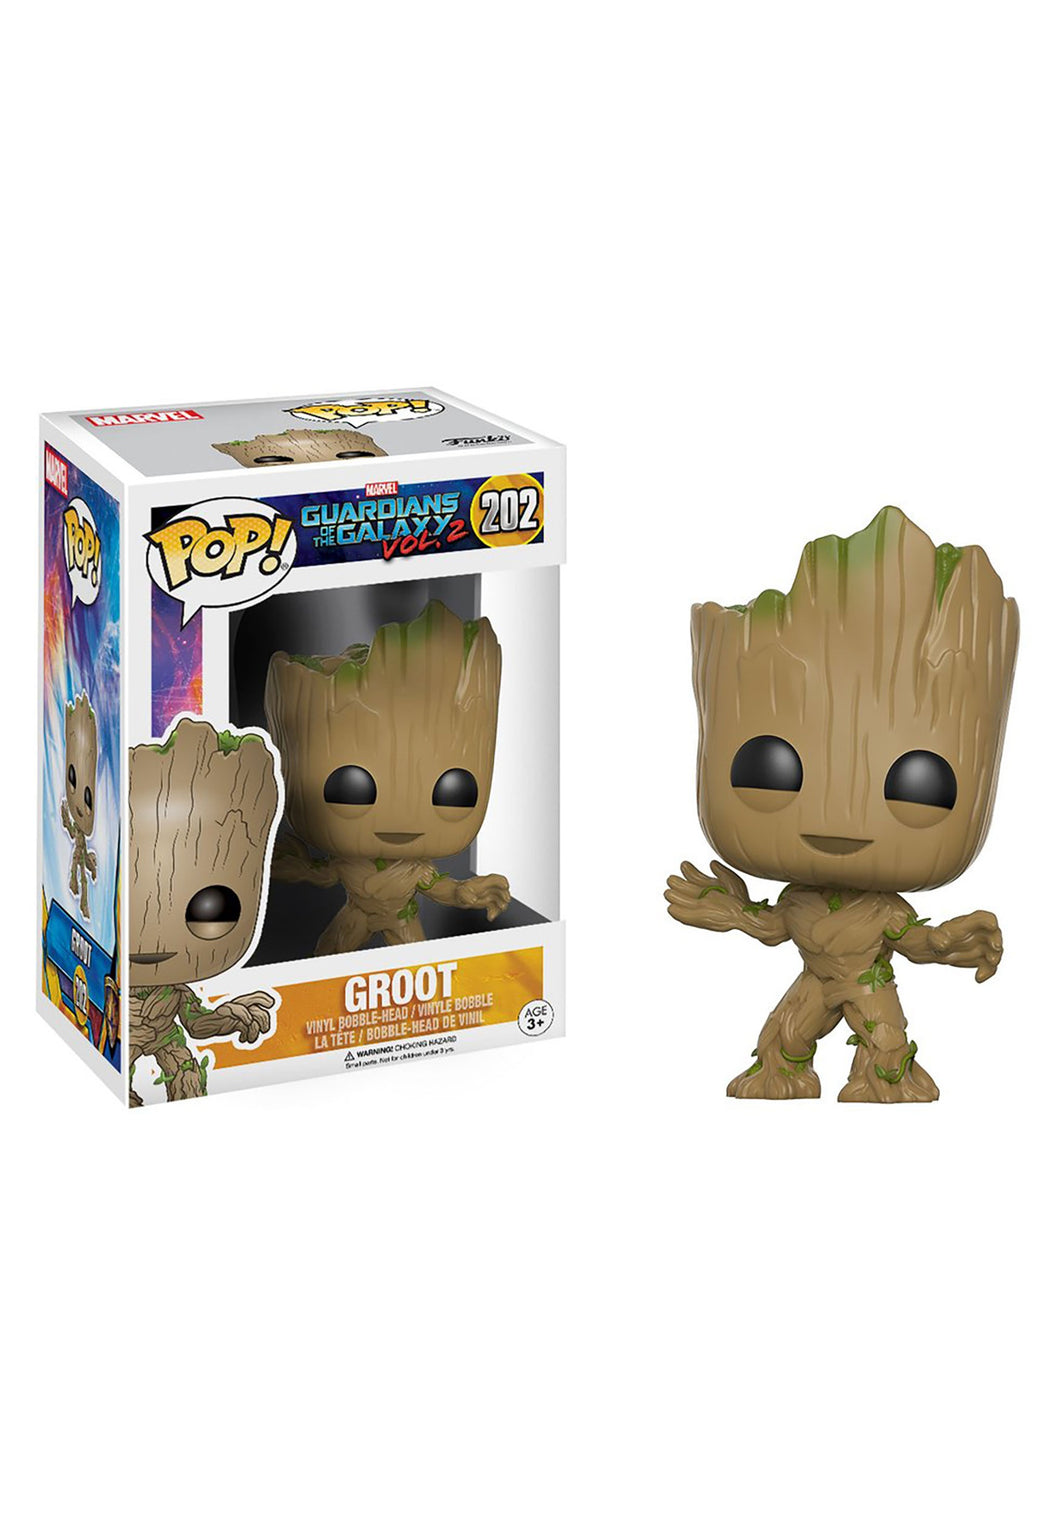 GUARDIANS OF THE GALAXY VOL. 2 GROOT FUNKO POP! VINYL FIGURE #202